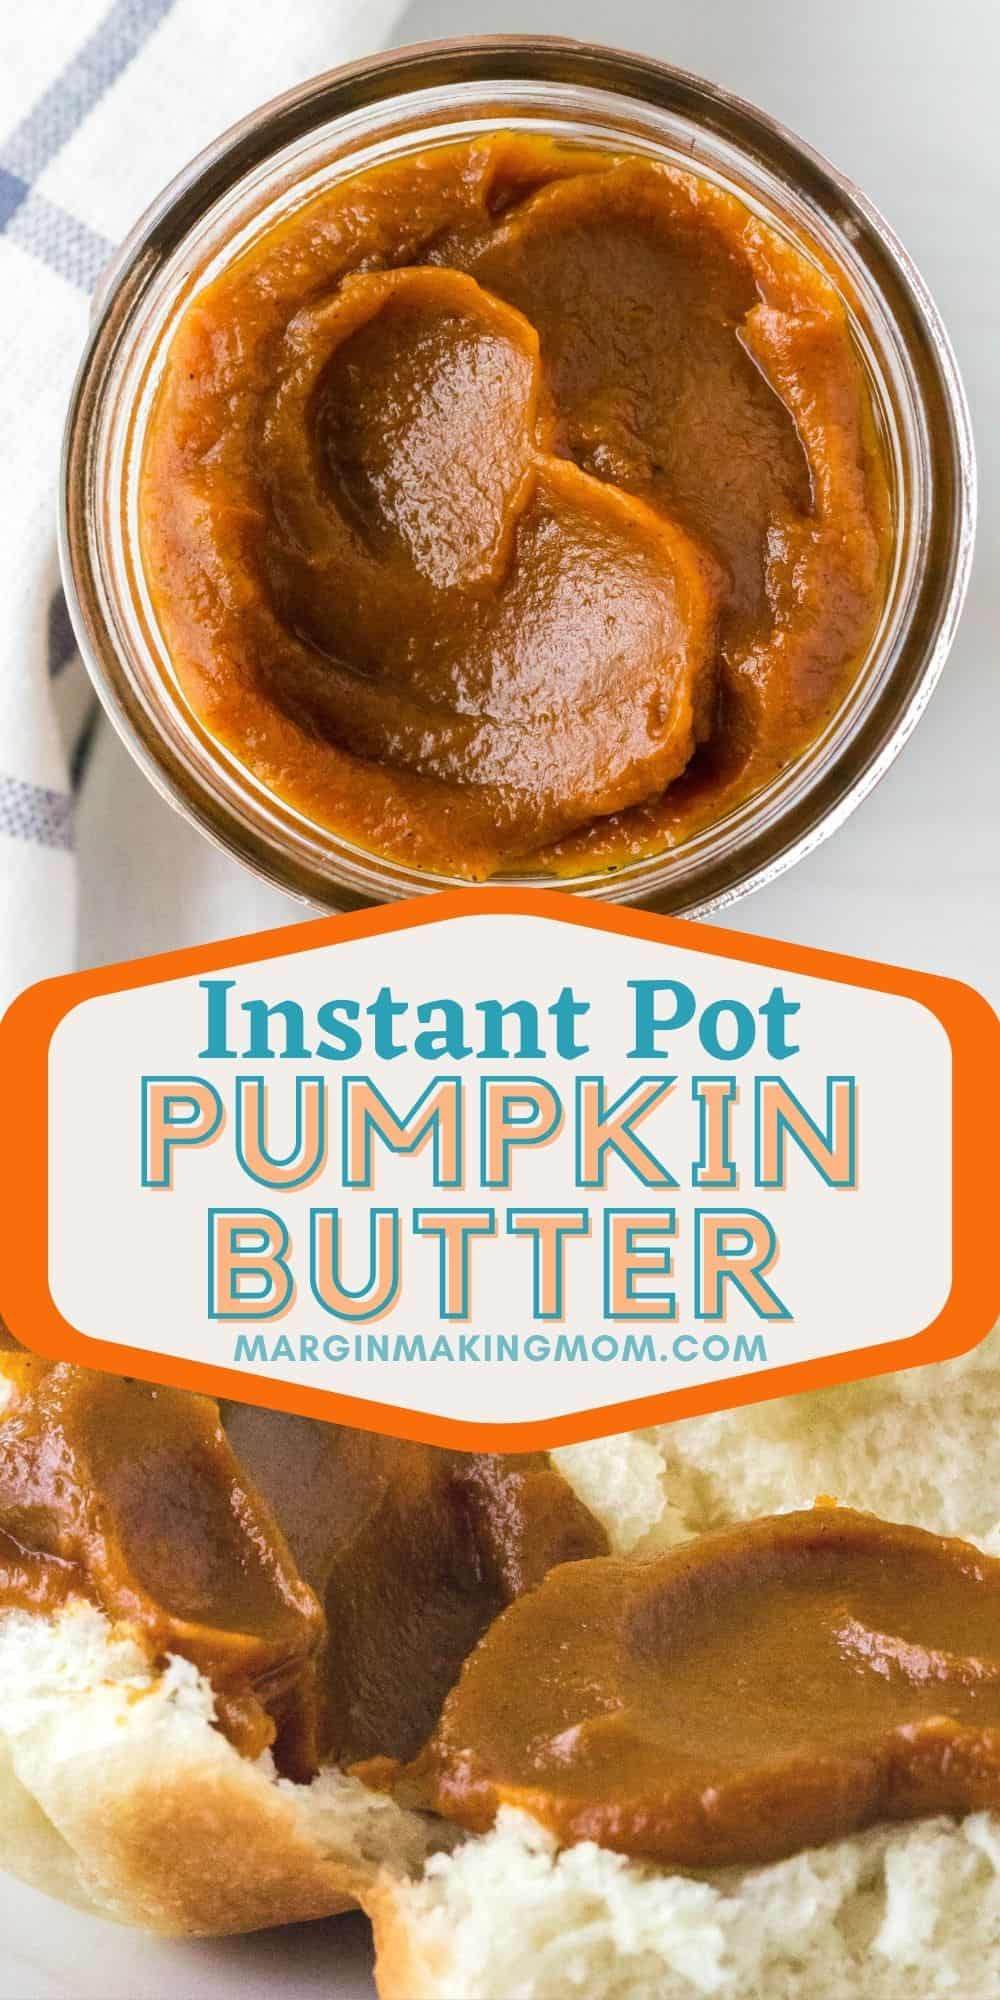 collage image featuring two photos of pumpkin butter. One photo shows a jar of the homemade pumpkin butter and another shows it spread on a fresh dinner roll.